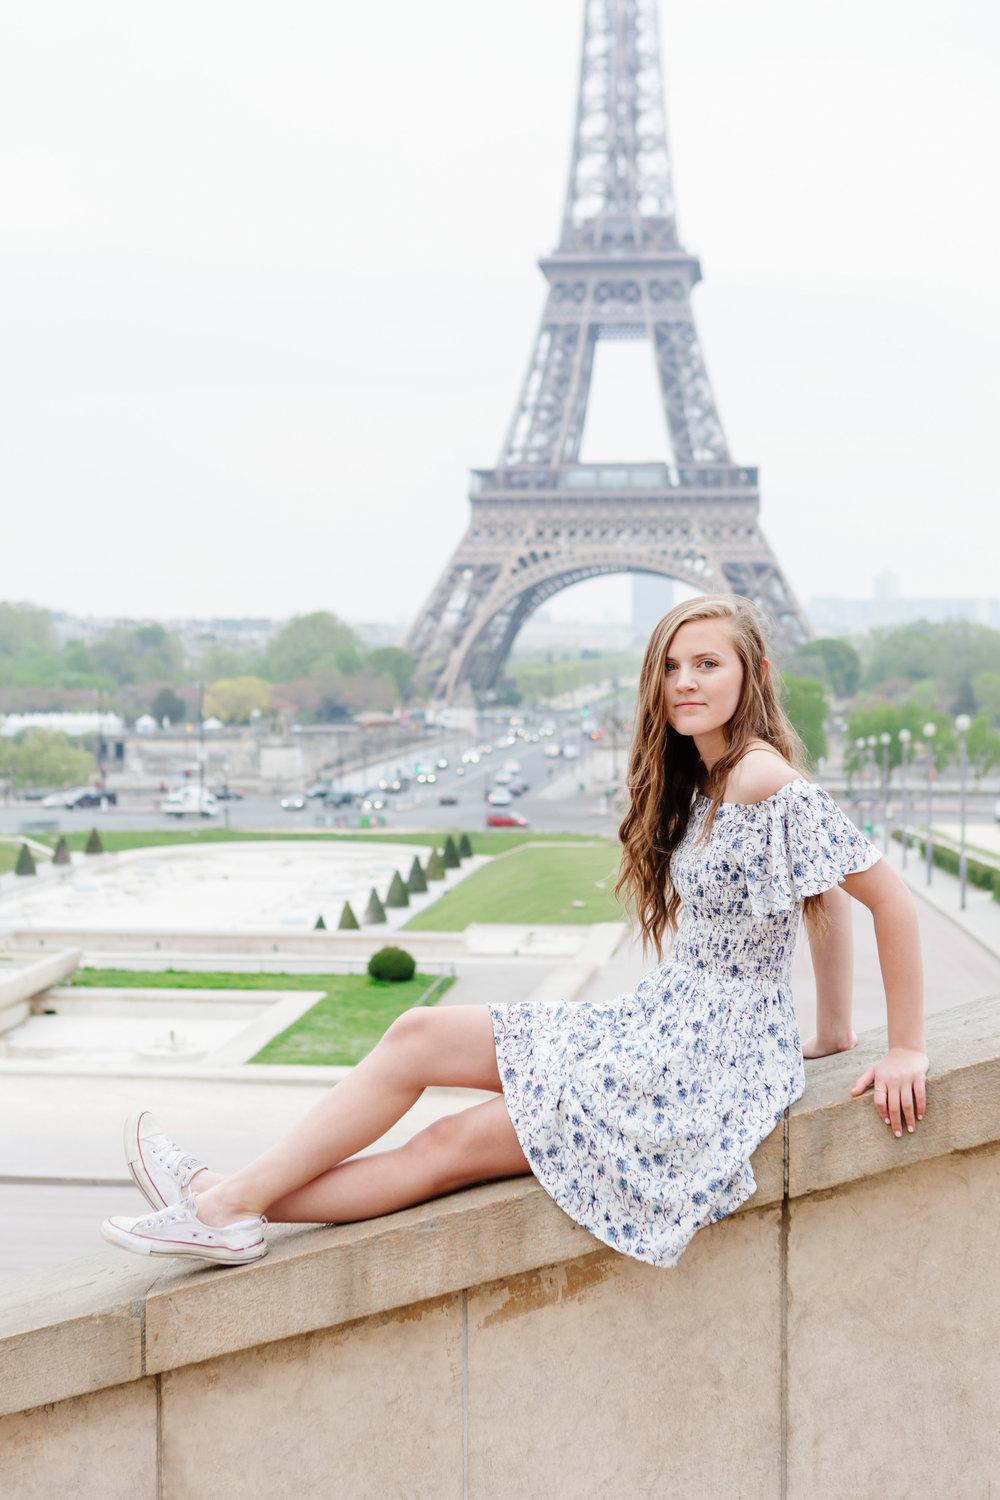 Sweet sixteen quinceanera senior portrait at Trocadero and the Eiffel Tower by Paris Photographer Federico Guendel IheartParisfr